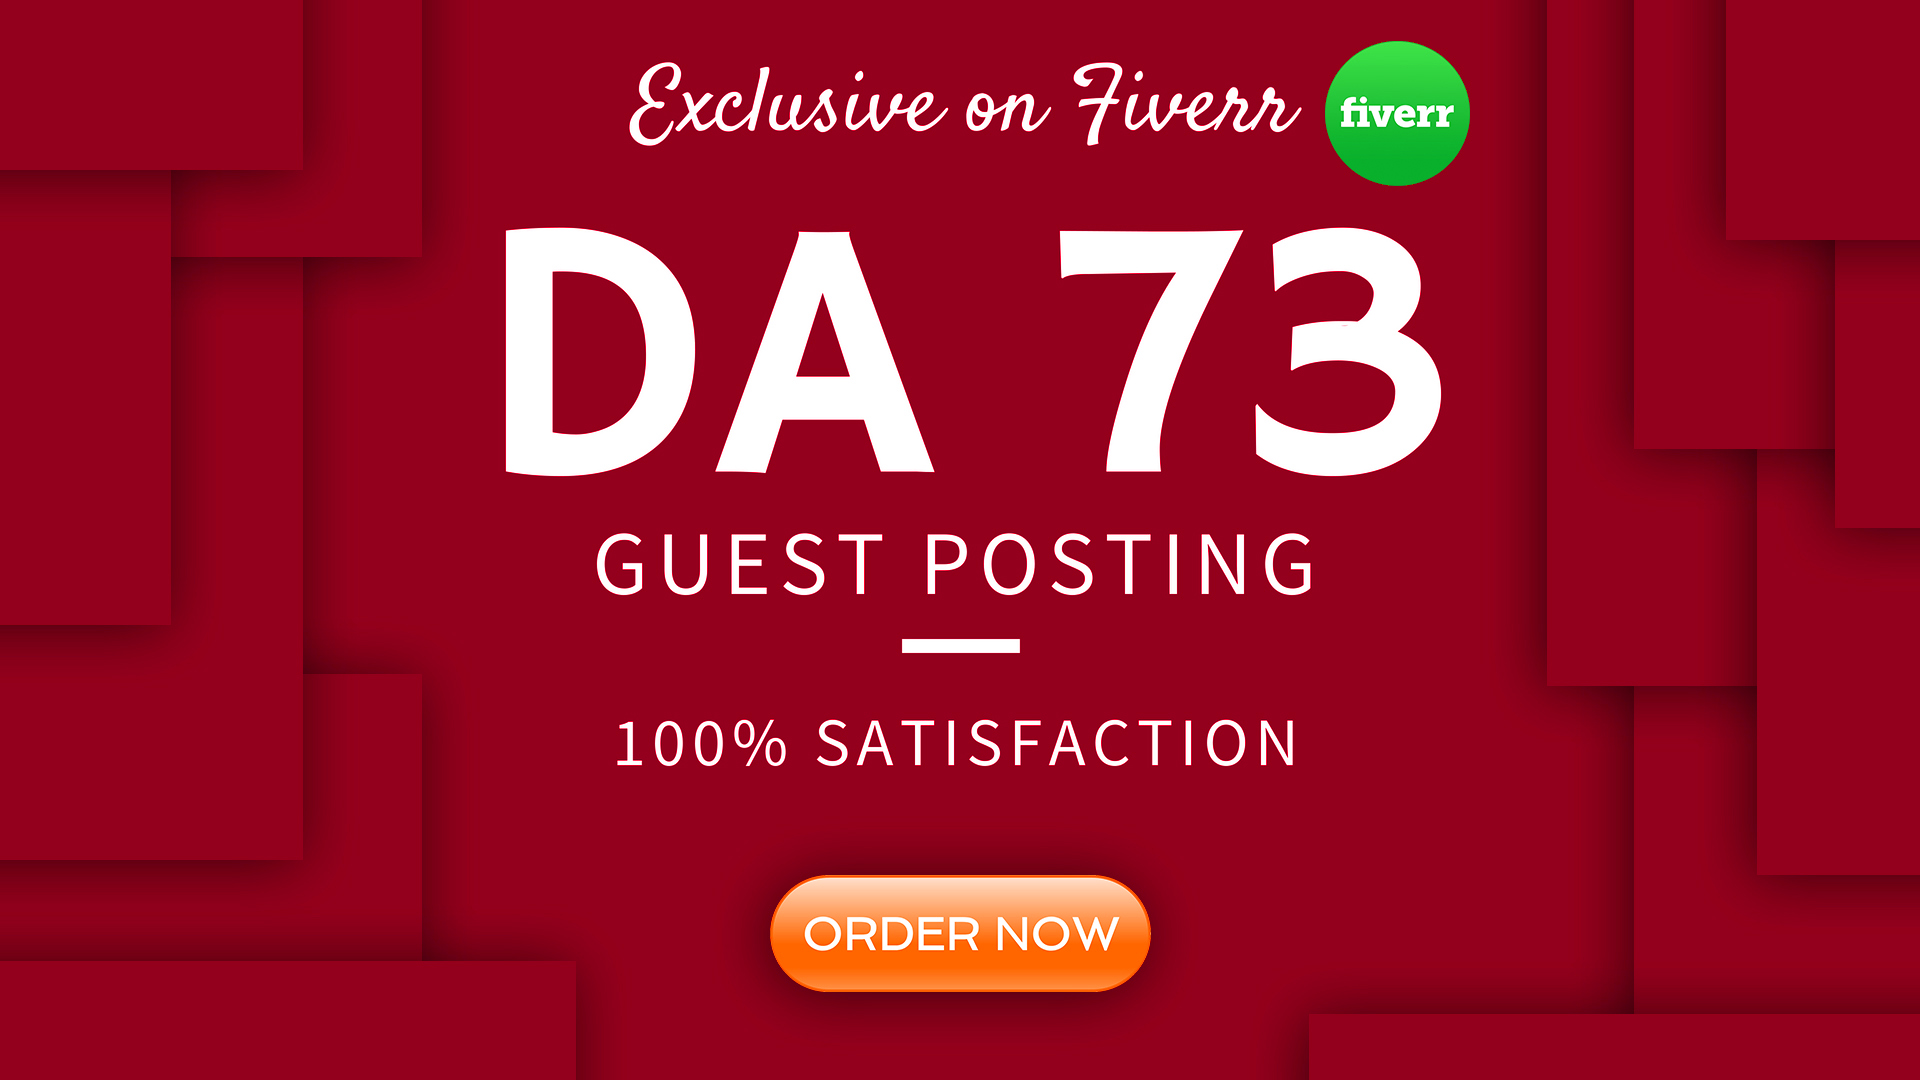 I Provide Guest Post On Da 73 And Pa 78 Website